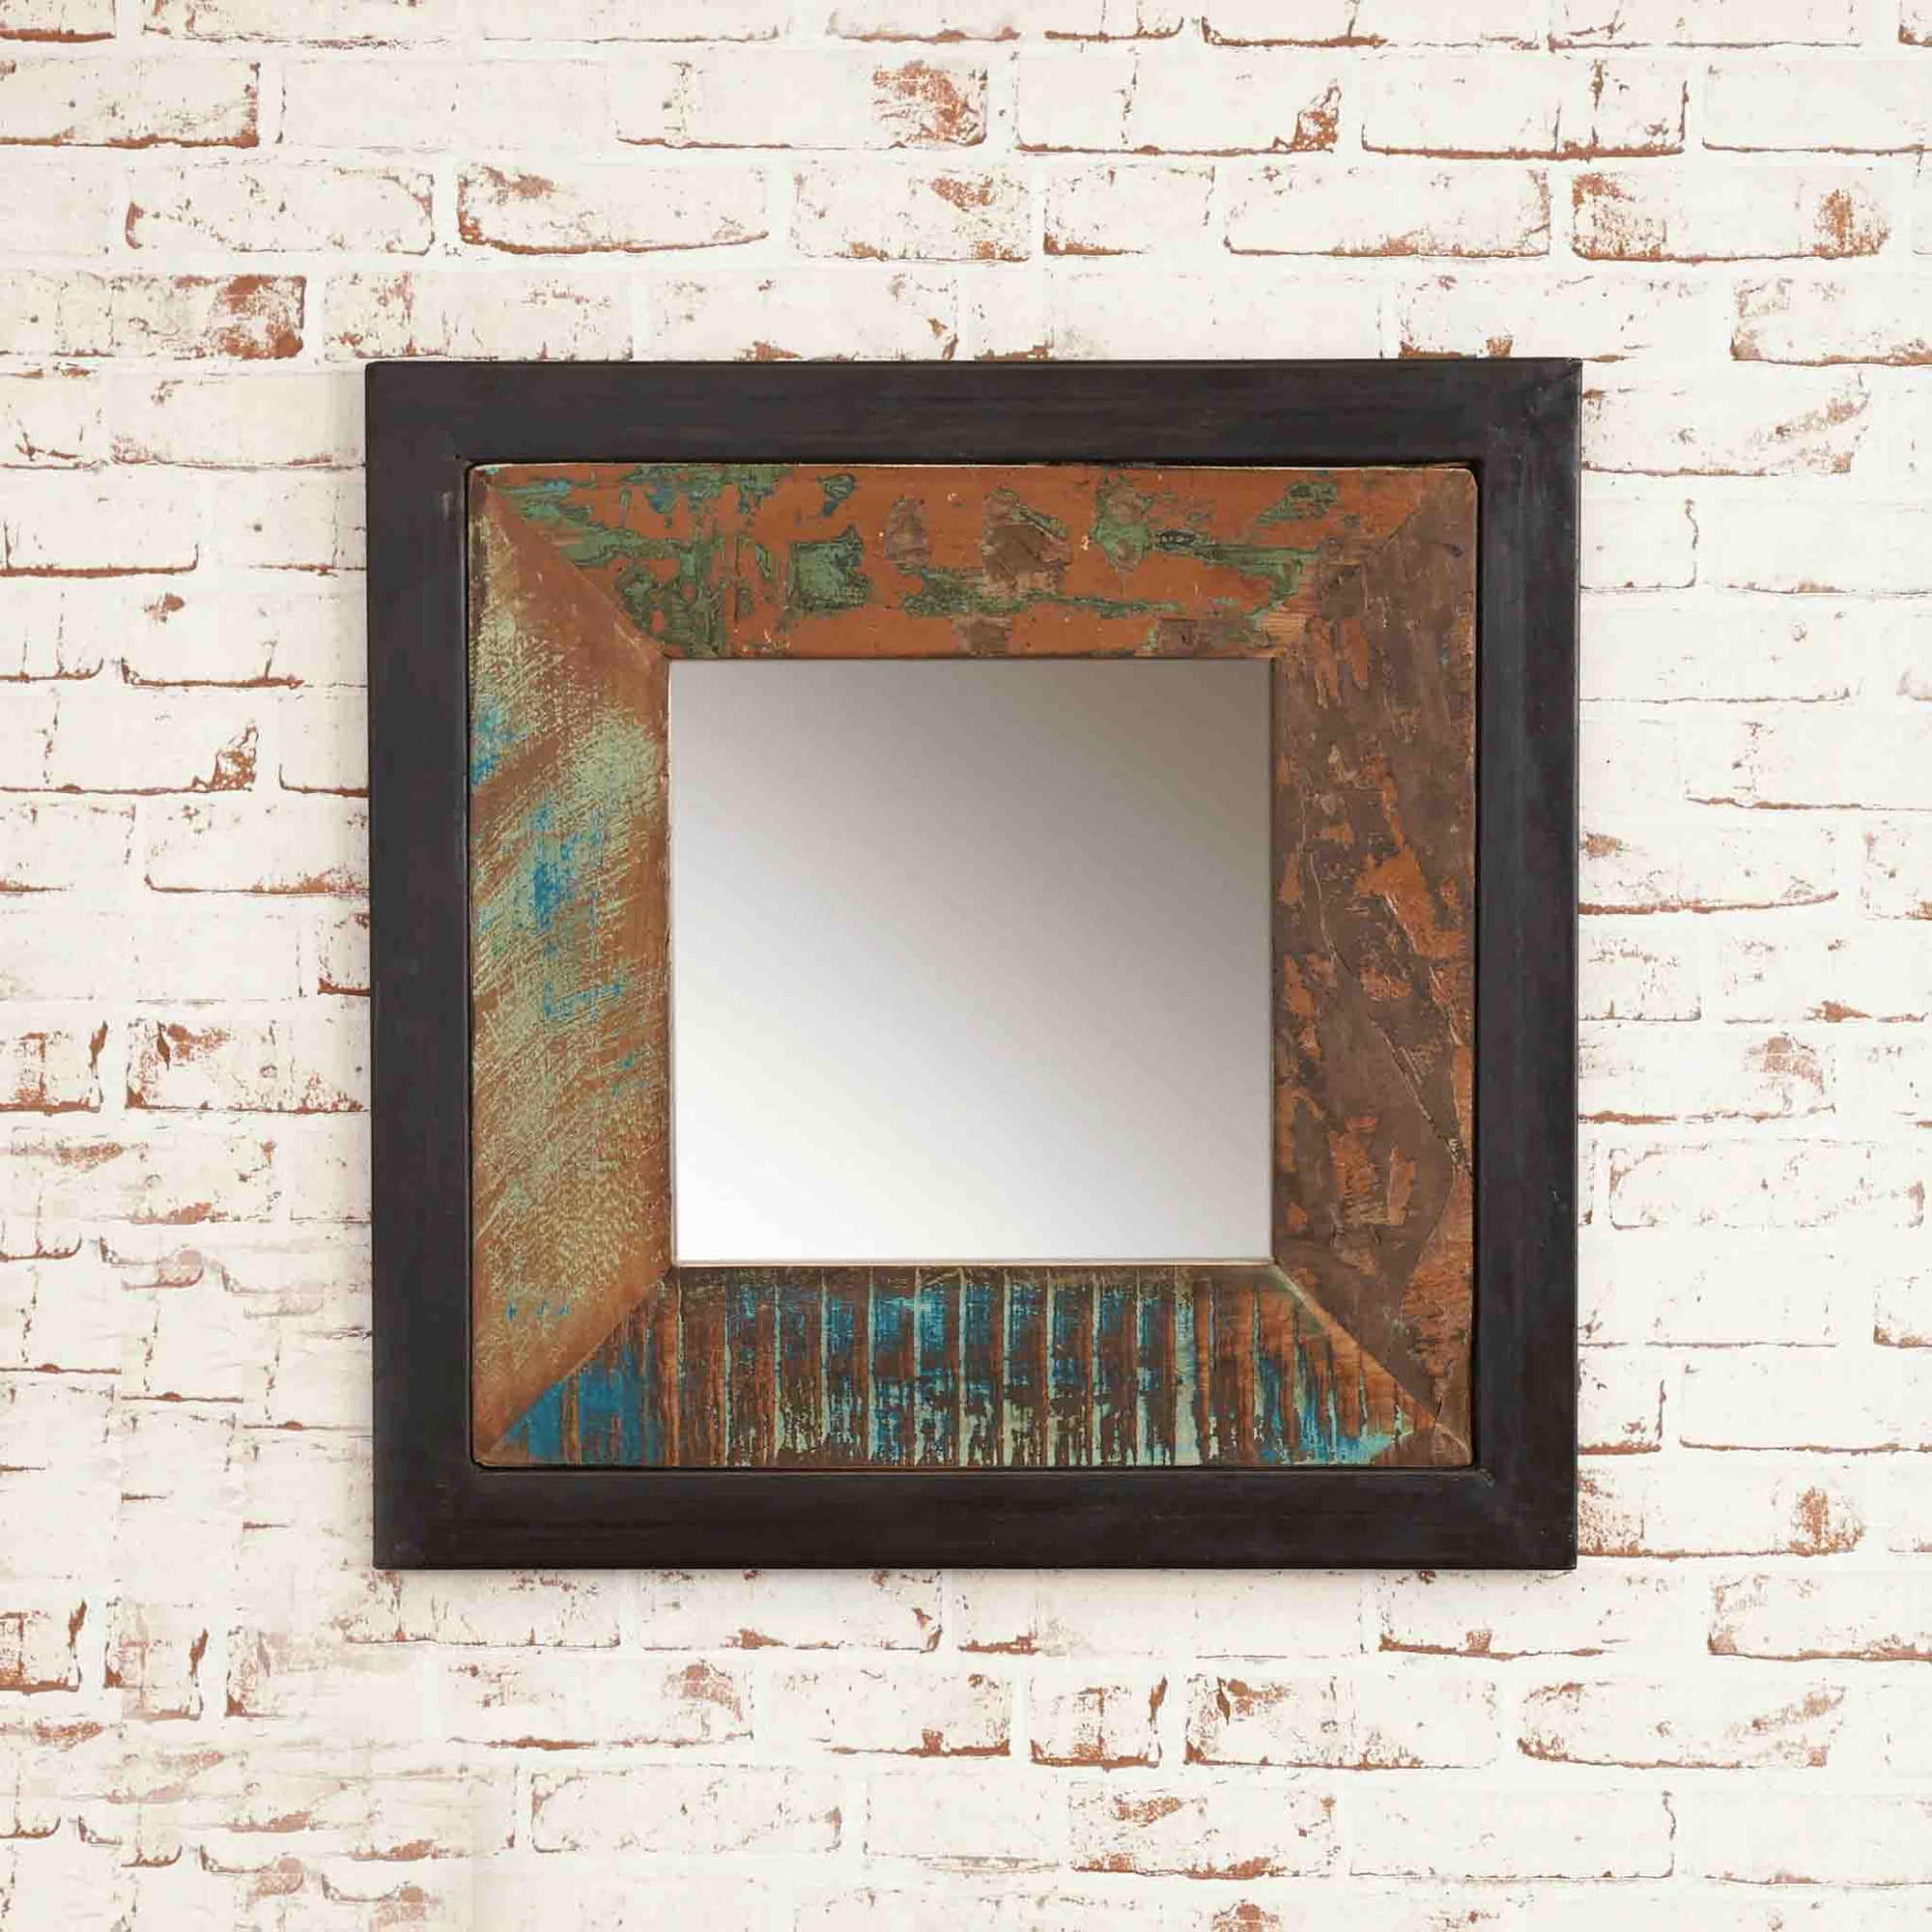 The Urban Chic Industrial Reclaimed Wood Small Square Mirror from Roseland Furniture